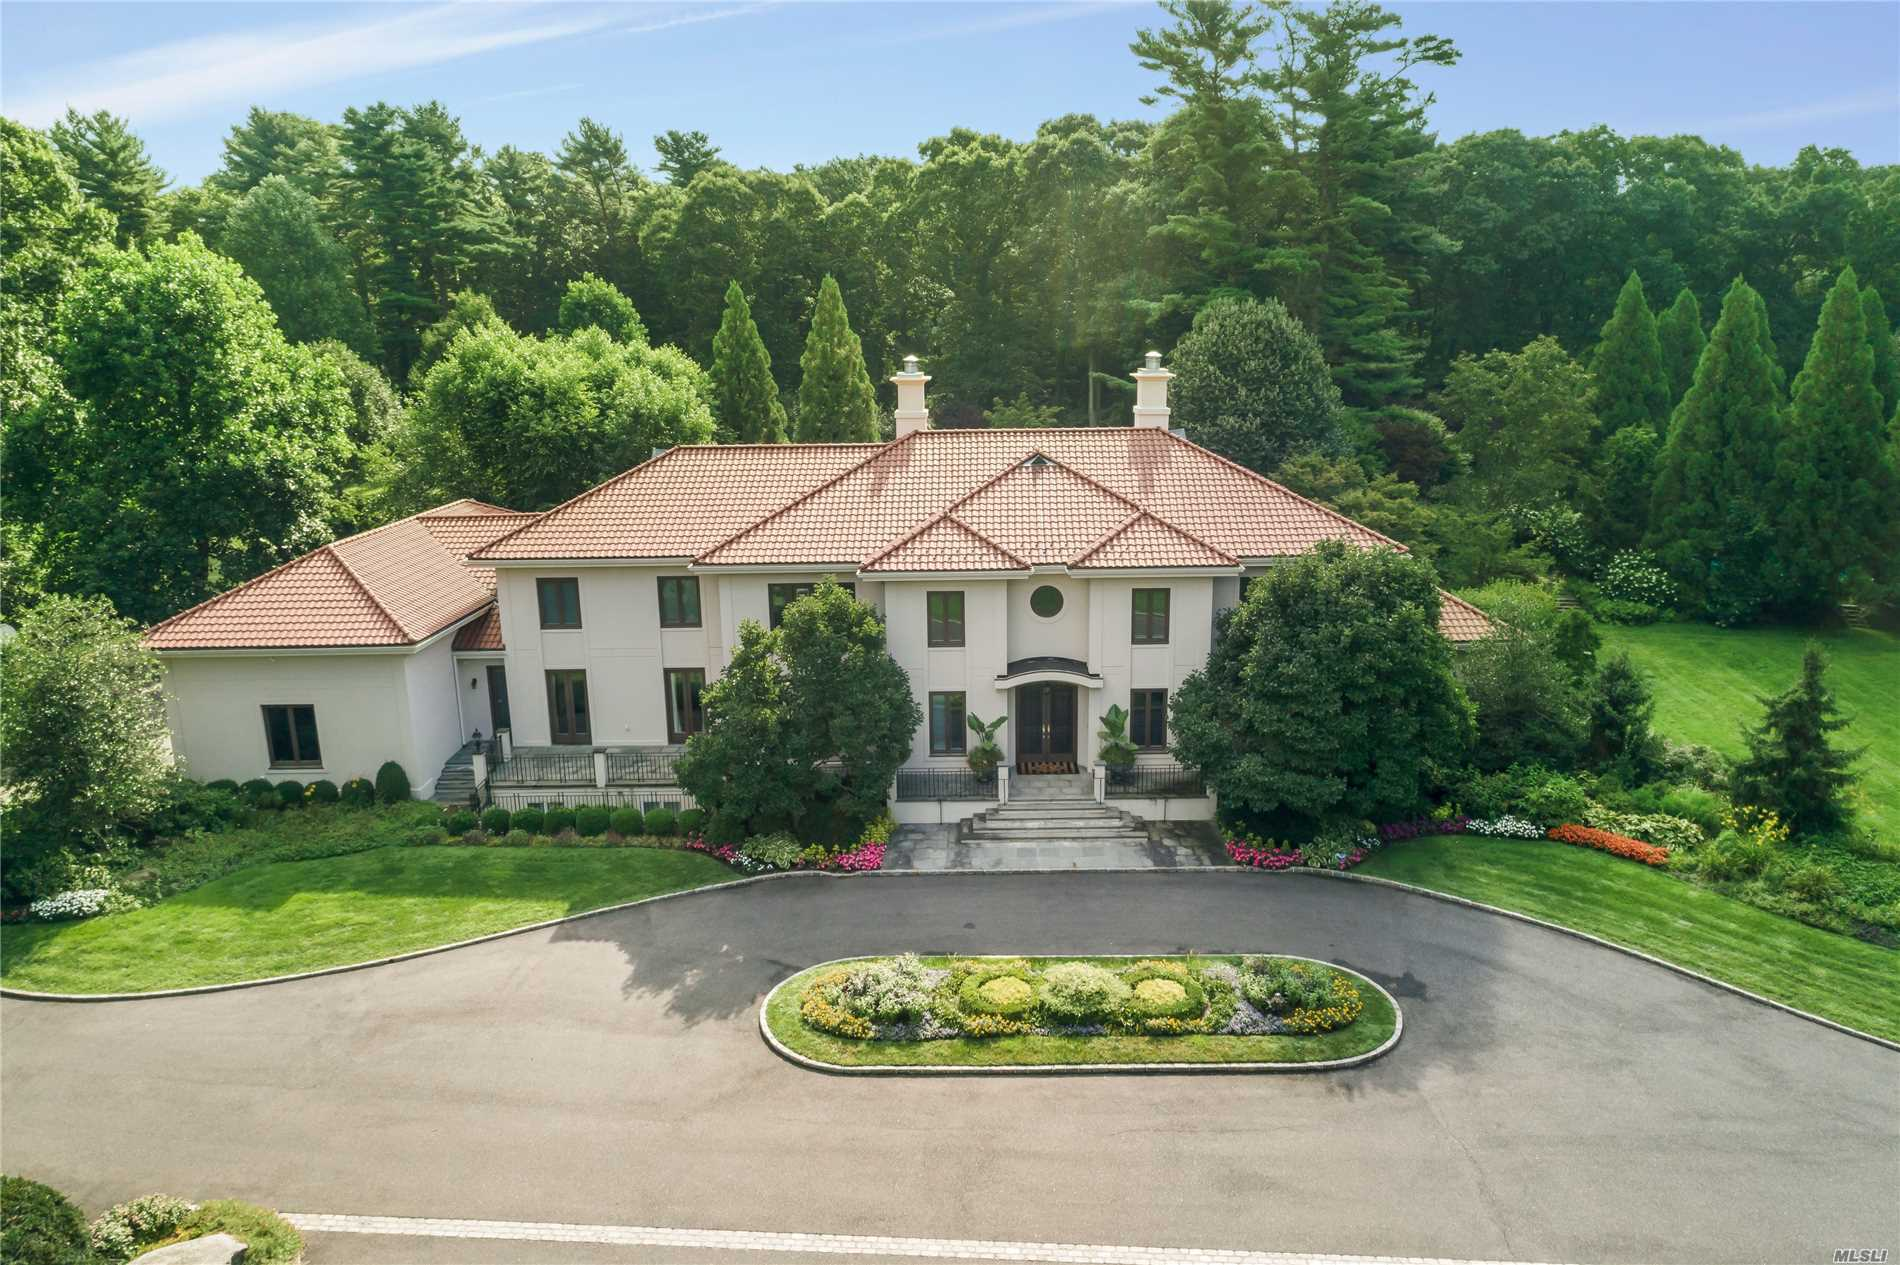 Grand Sun-Filled, 7 Acre, 8,000 Sq. Ft. Exquisite Estate Complete With Two Master Bedroom Suites; One On The First Floor With Sitting Room & Fireplace, Second Master On 2nd Floor, 7 Car Garage-5 Attached, 4 Family Ensuite Bedrooms, Three Fireplaces, Wine Cellar And More. Complete With An Outdoor Kitchen, Pool, Majestic Trees, Basketball Court; Located In Award Winning Lv School District. International Baccalaureate Program. Ease Of Access To Major Highways, Great Nyc Commute.